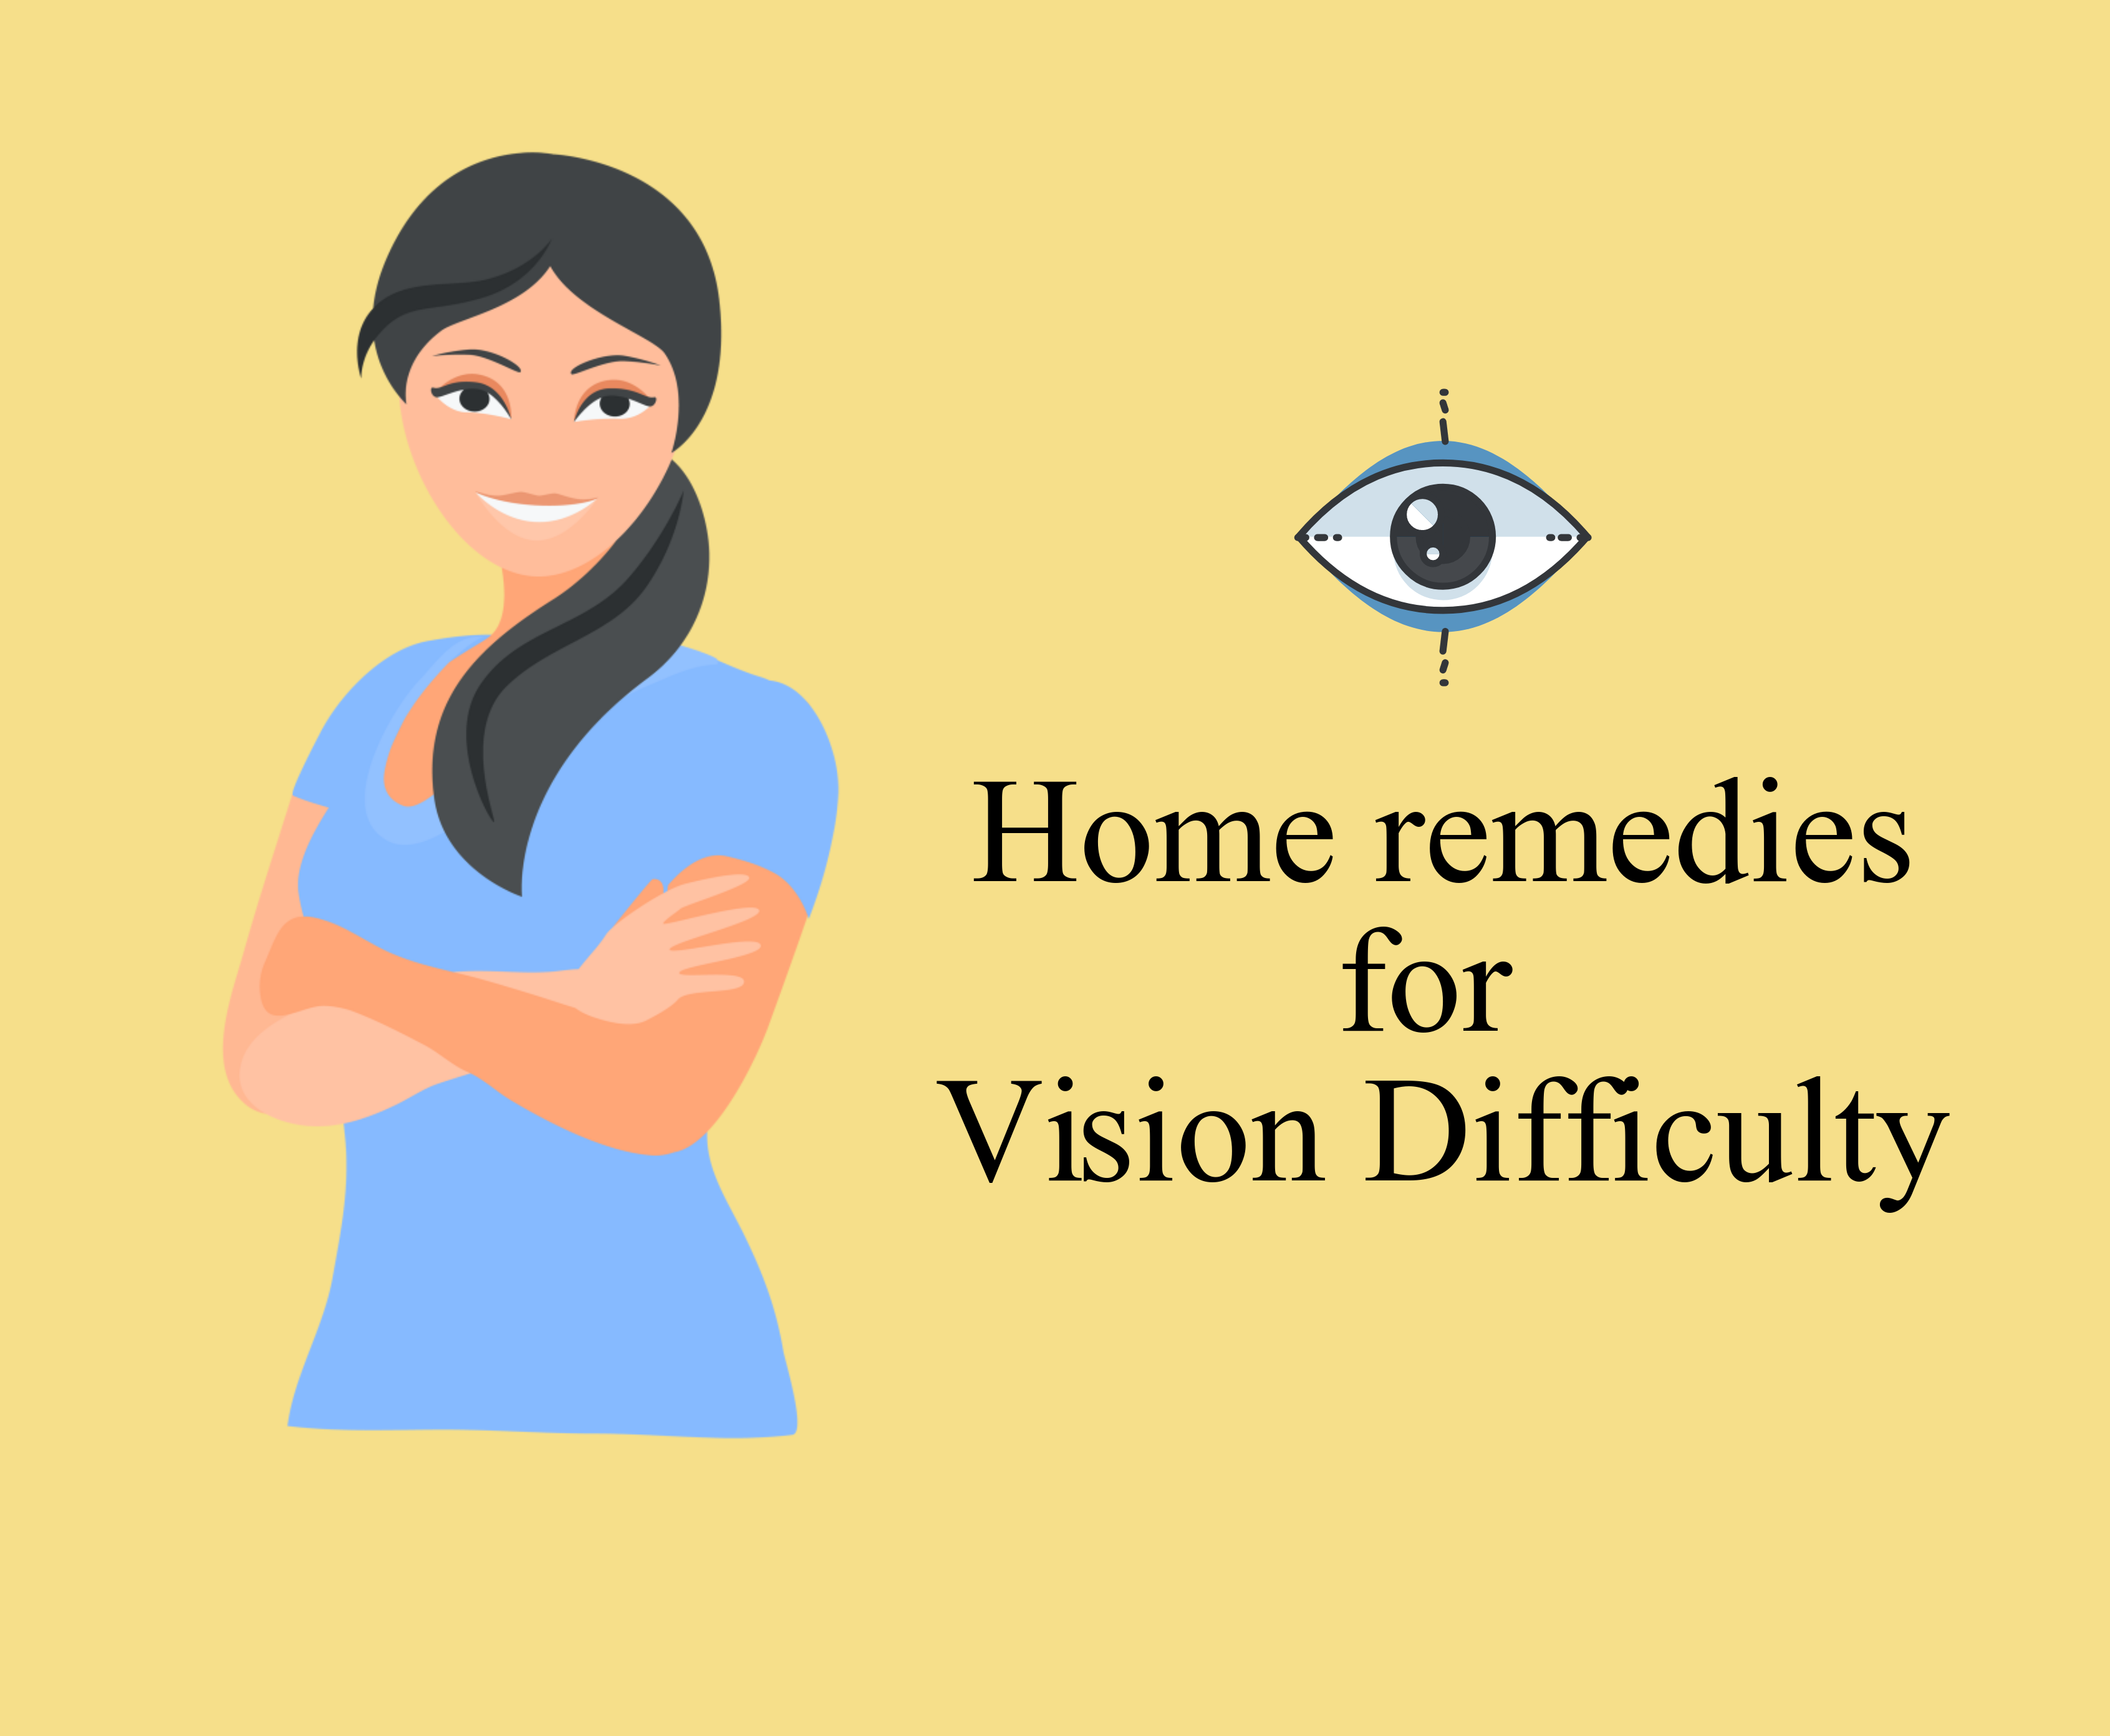 Home Remedies to cure Vision Difficulty